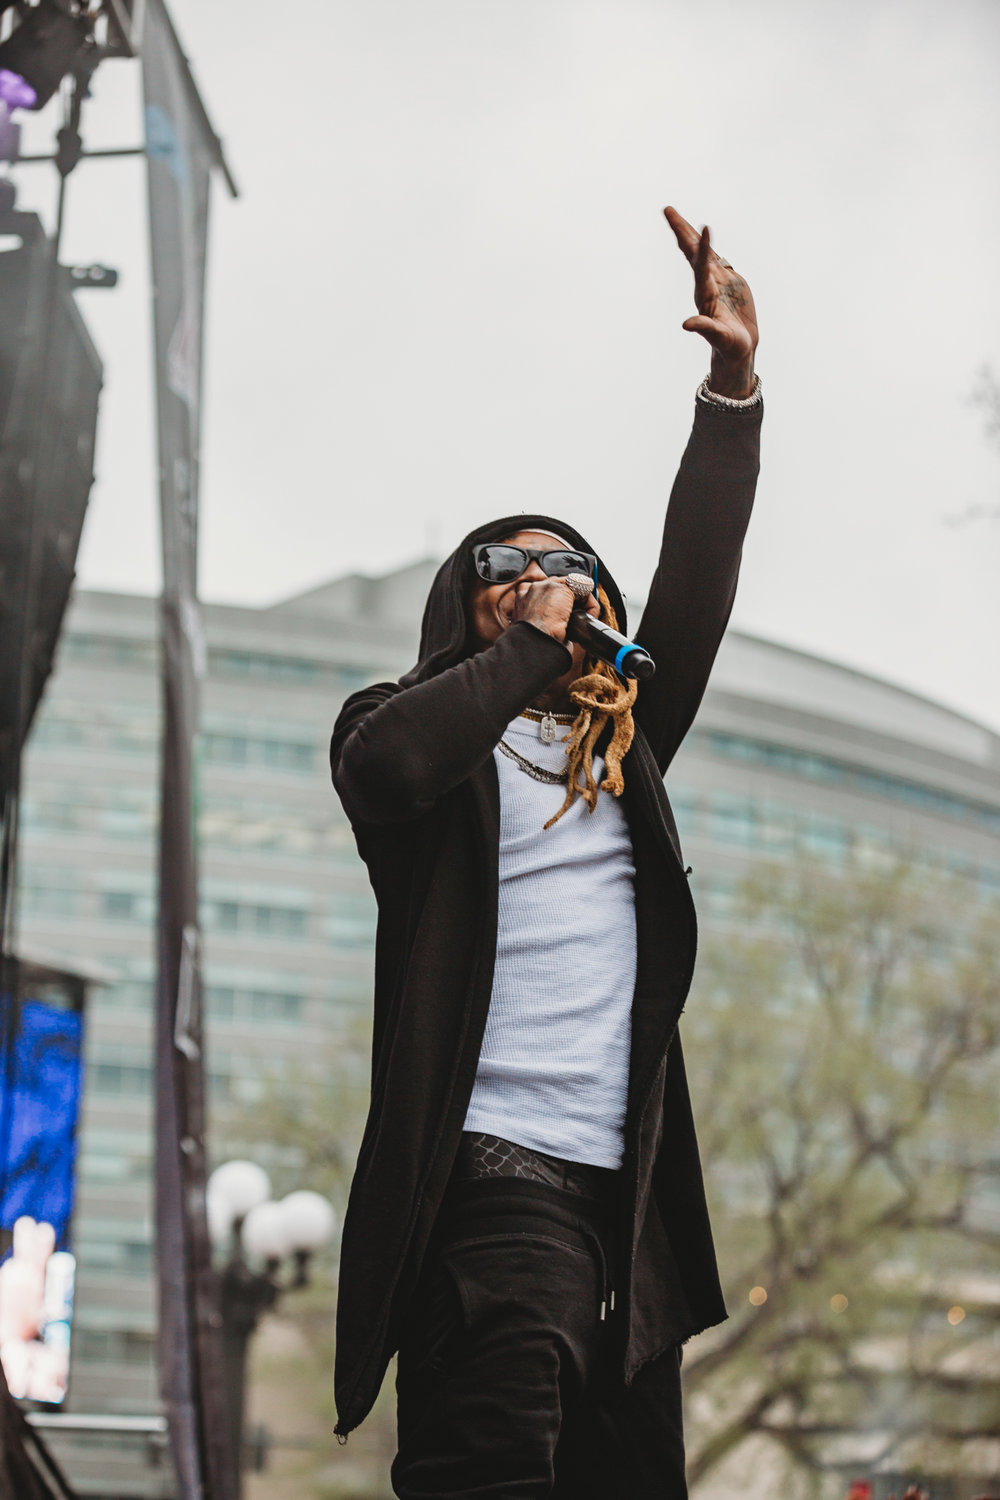 Mile High 420 Festival Civic Center Park Nikki A. Rae Photography 04.20.2018-2.jpg